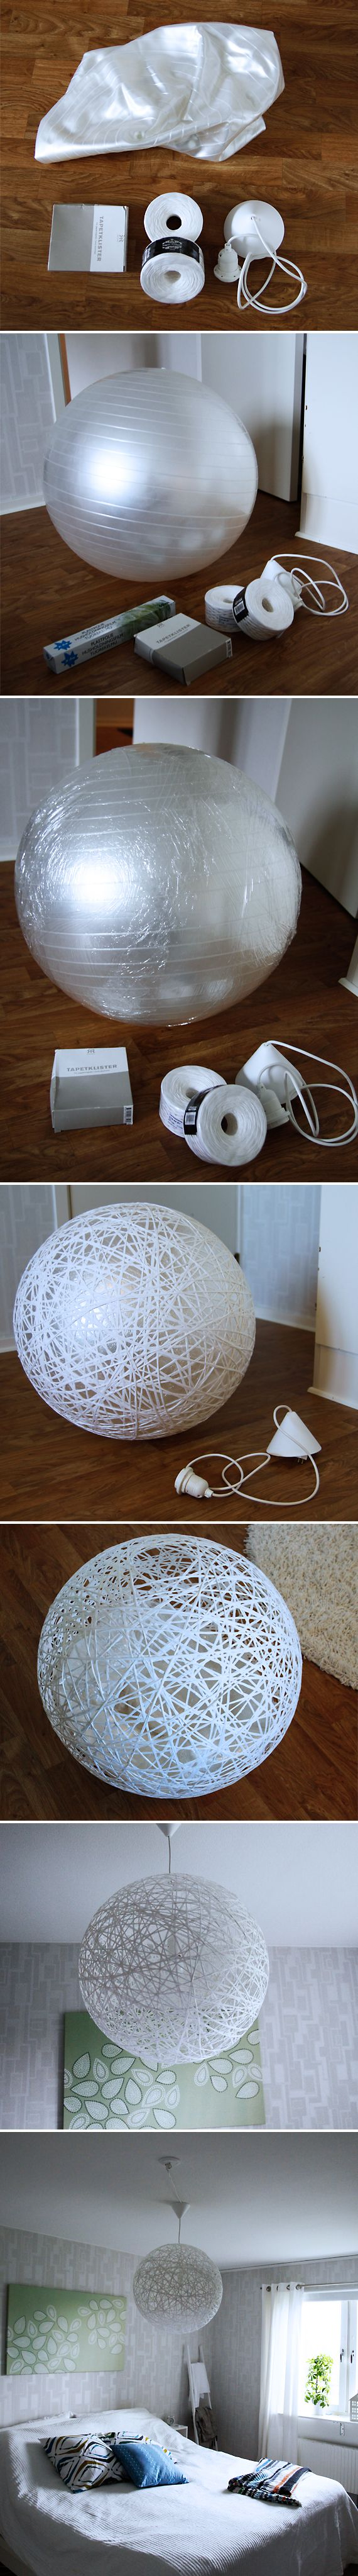 DIY: Blow up pilates ball & wrap in plastic. Mix the wallpaper glue according to package. Dip paper cord in glue & wrap around ball however you like (leave a hole in top for lamp bulb). Let iy dry for 24 hours. Deflate pilates ball & pull out through hole...